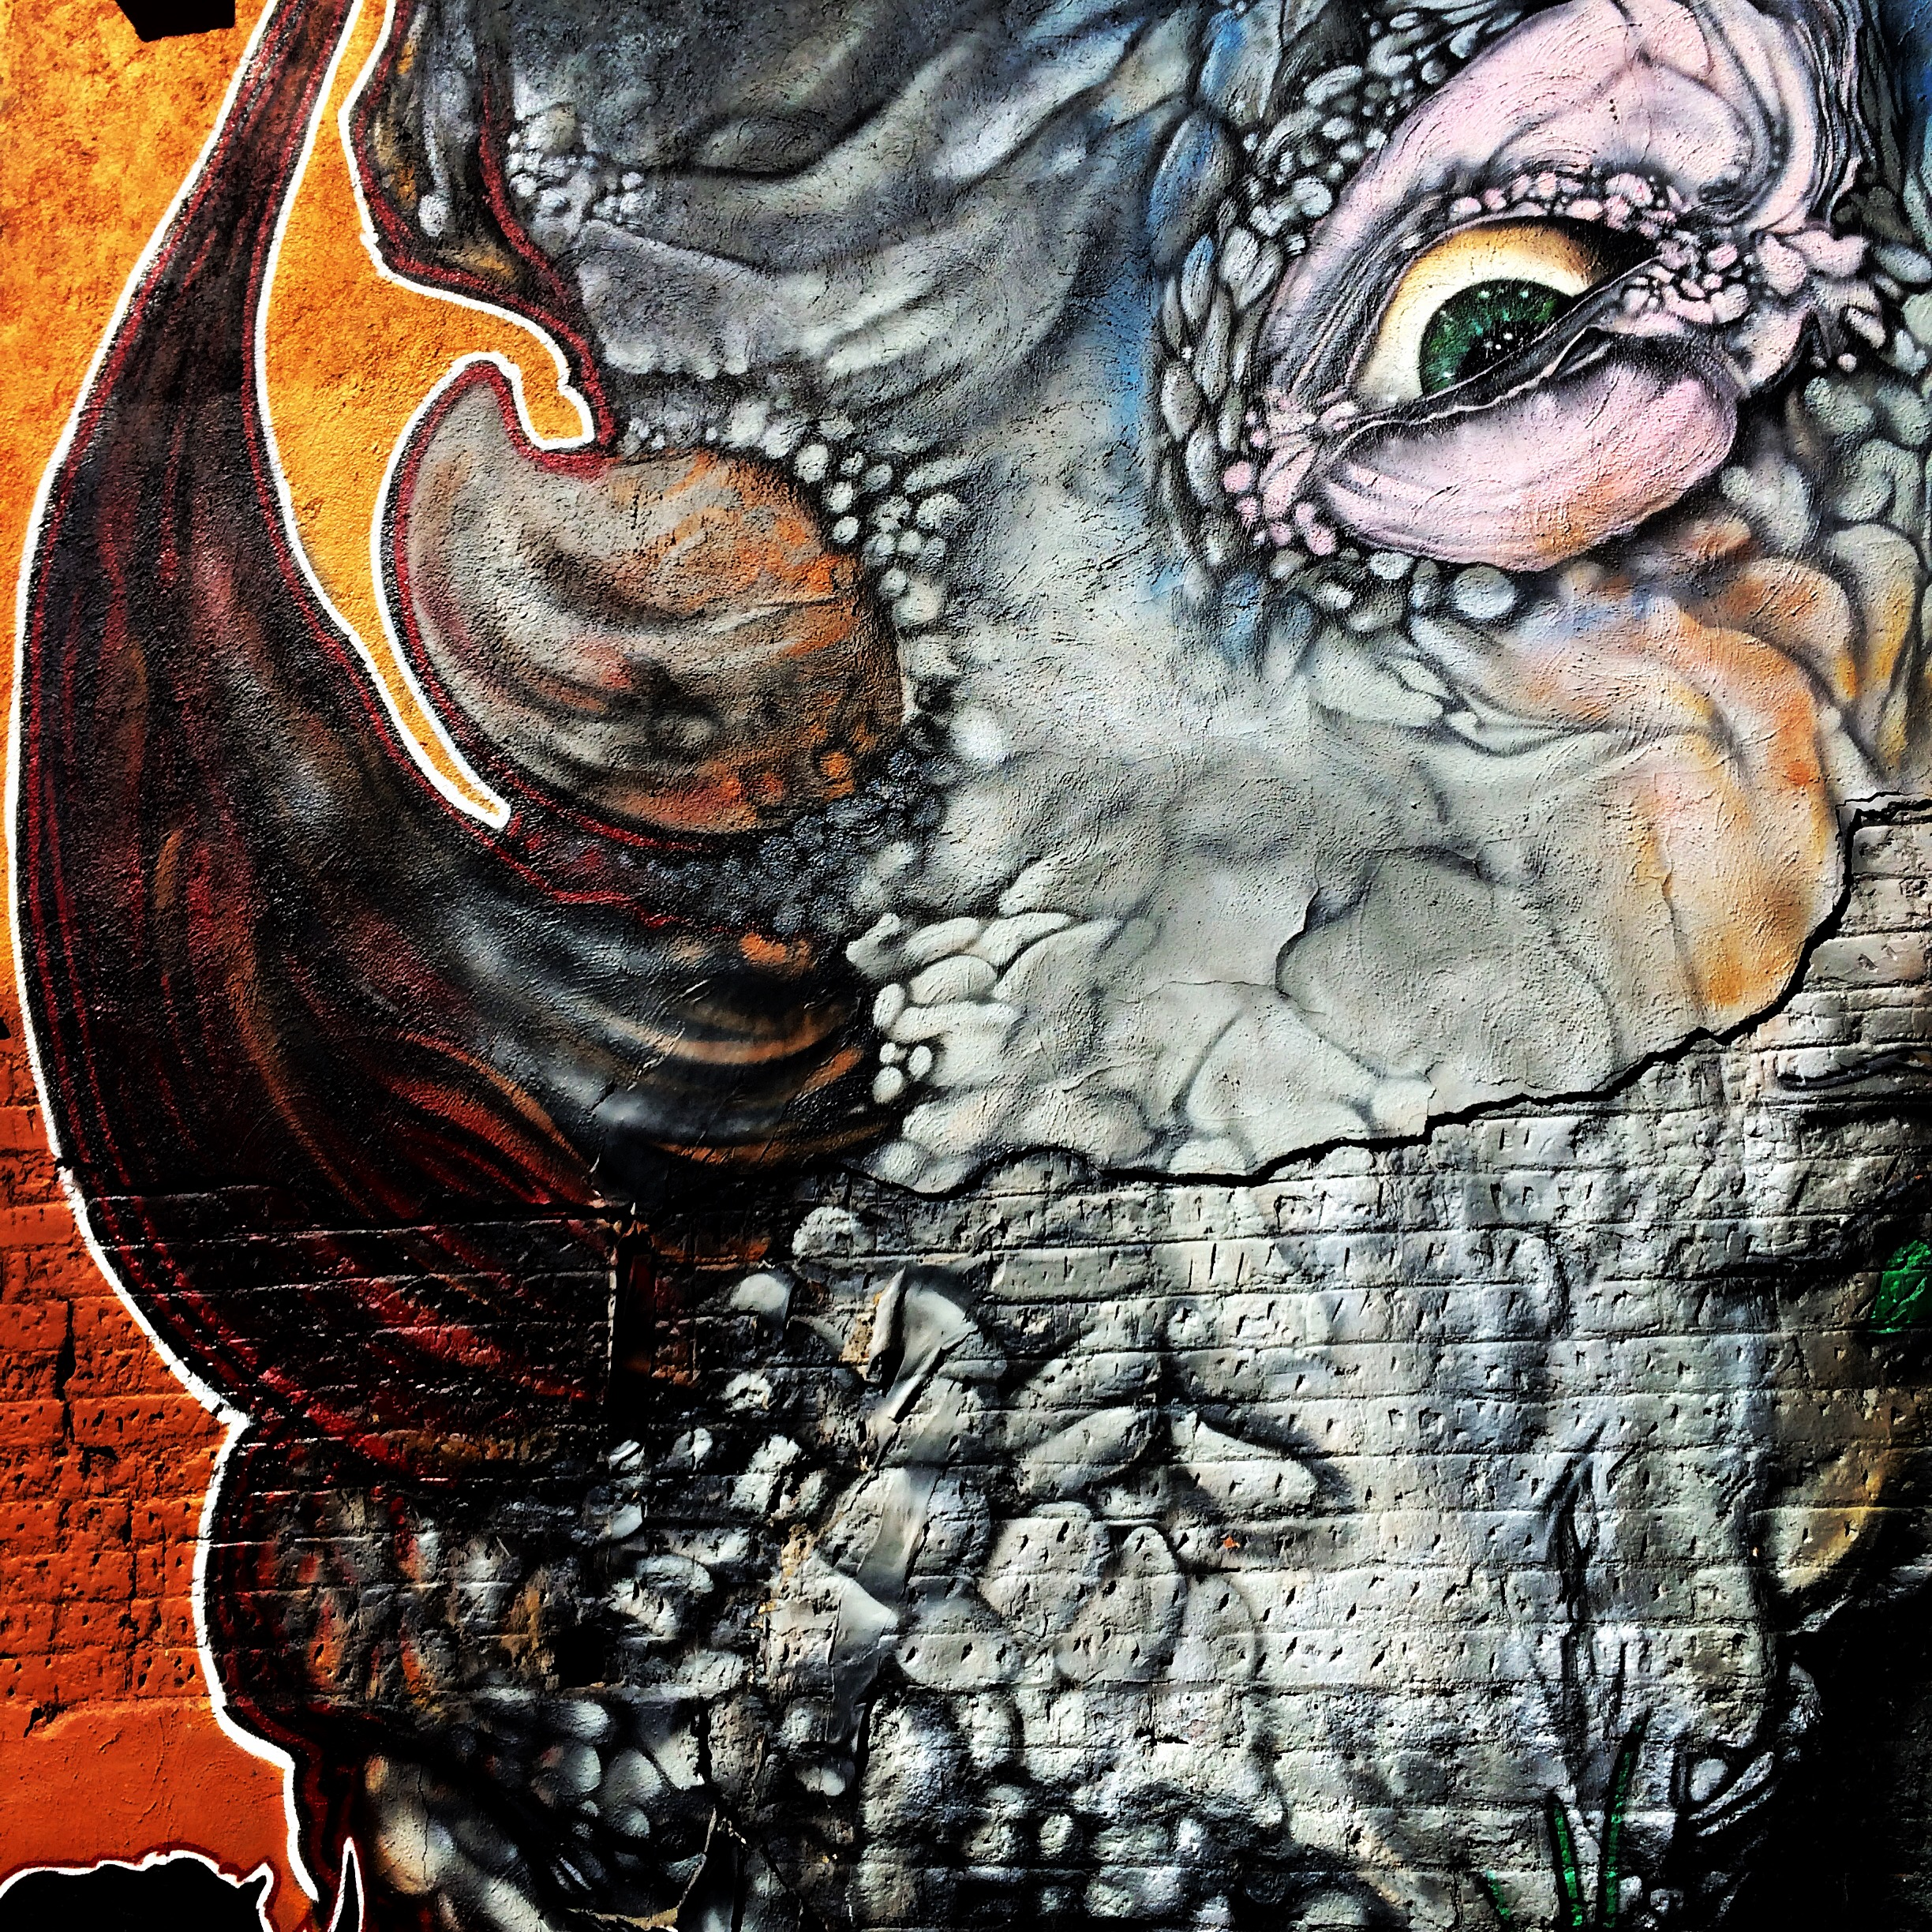 Photo: Rhino mural in RiNo